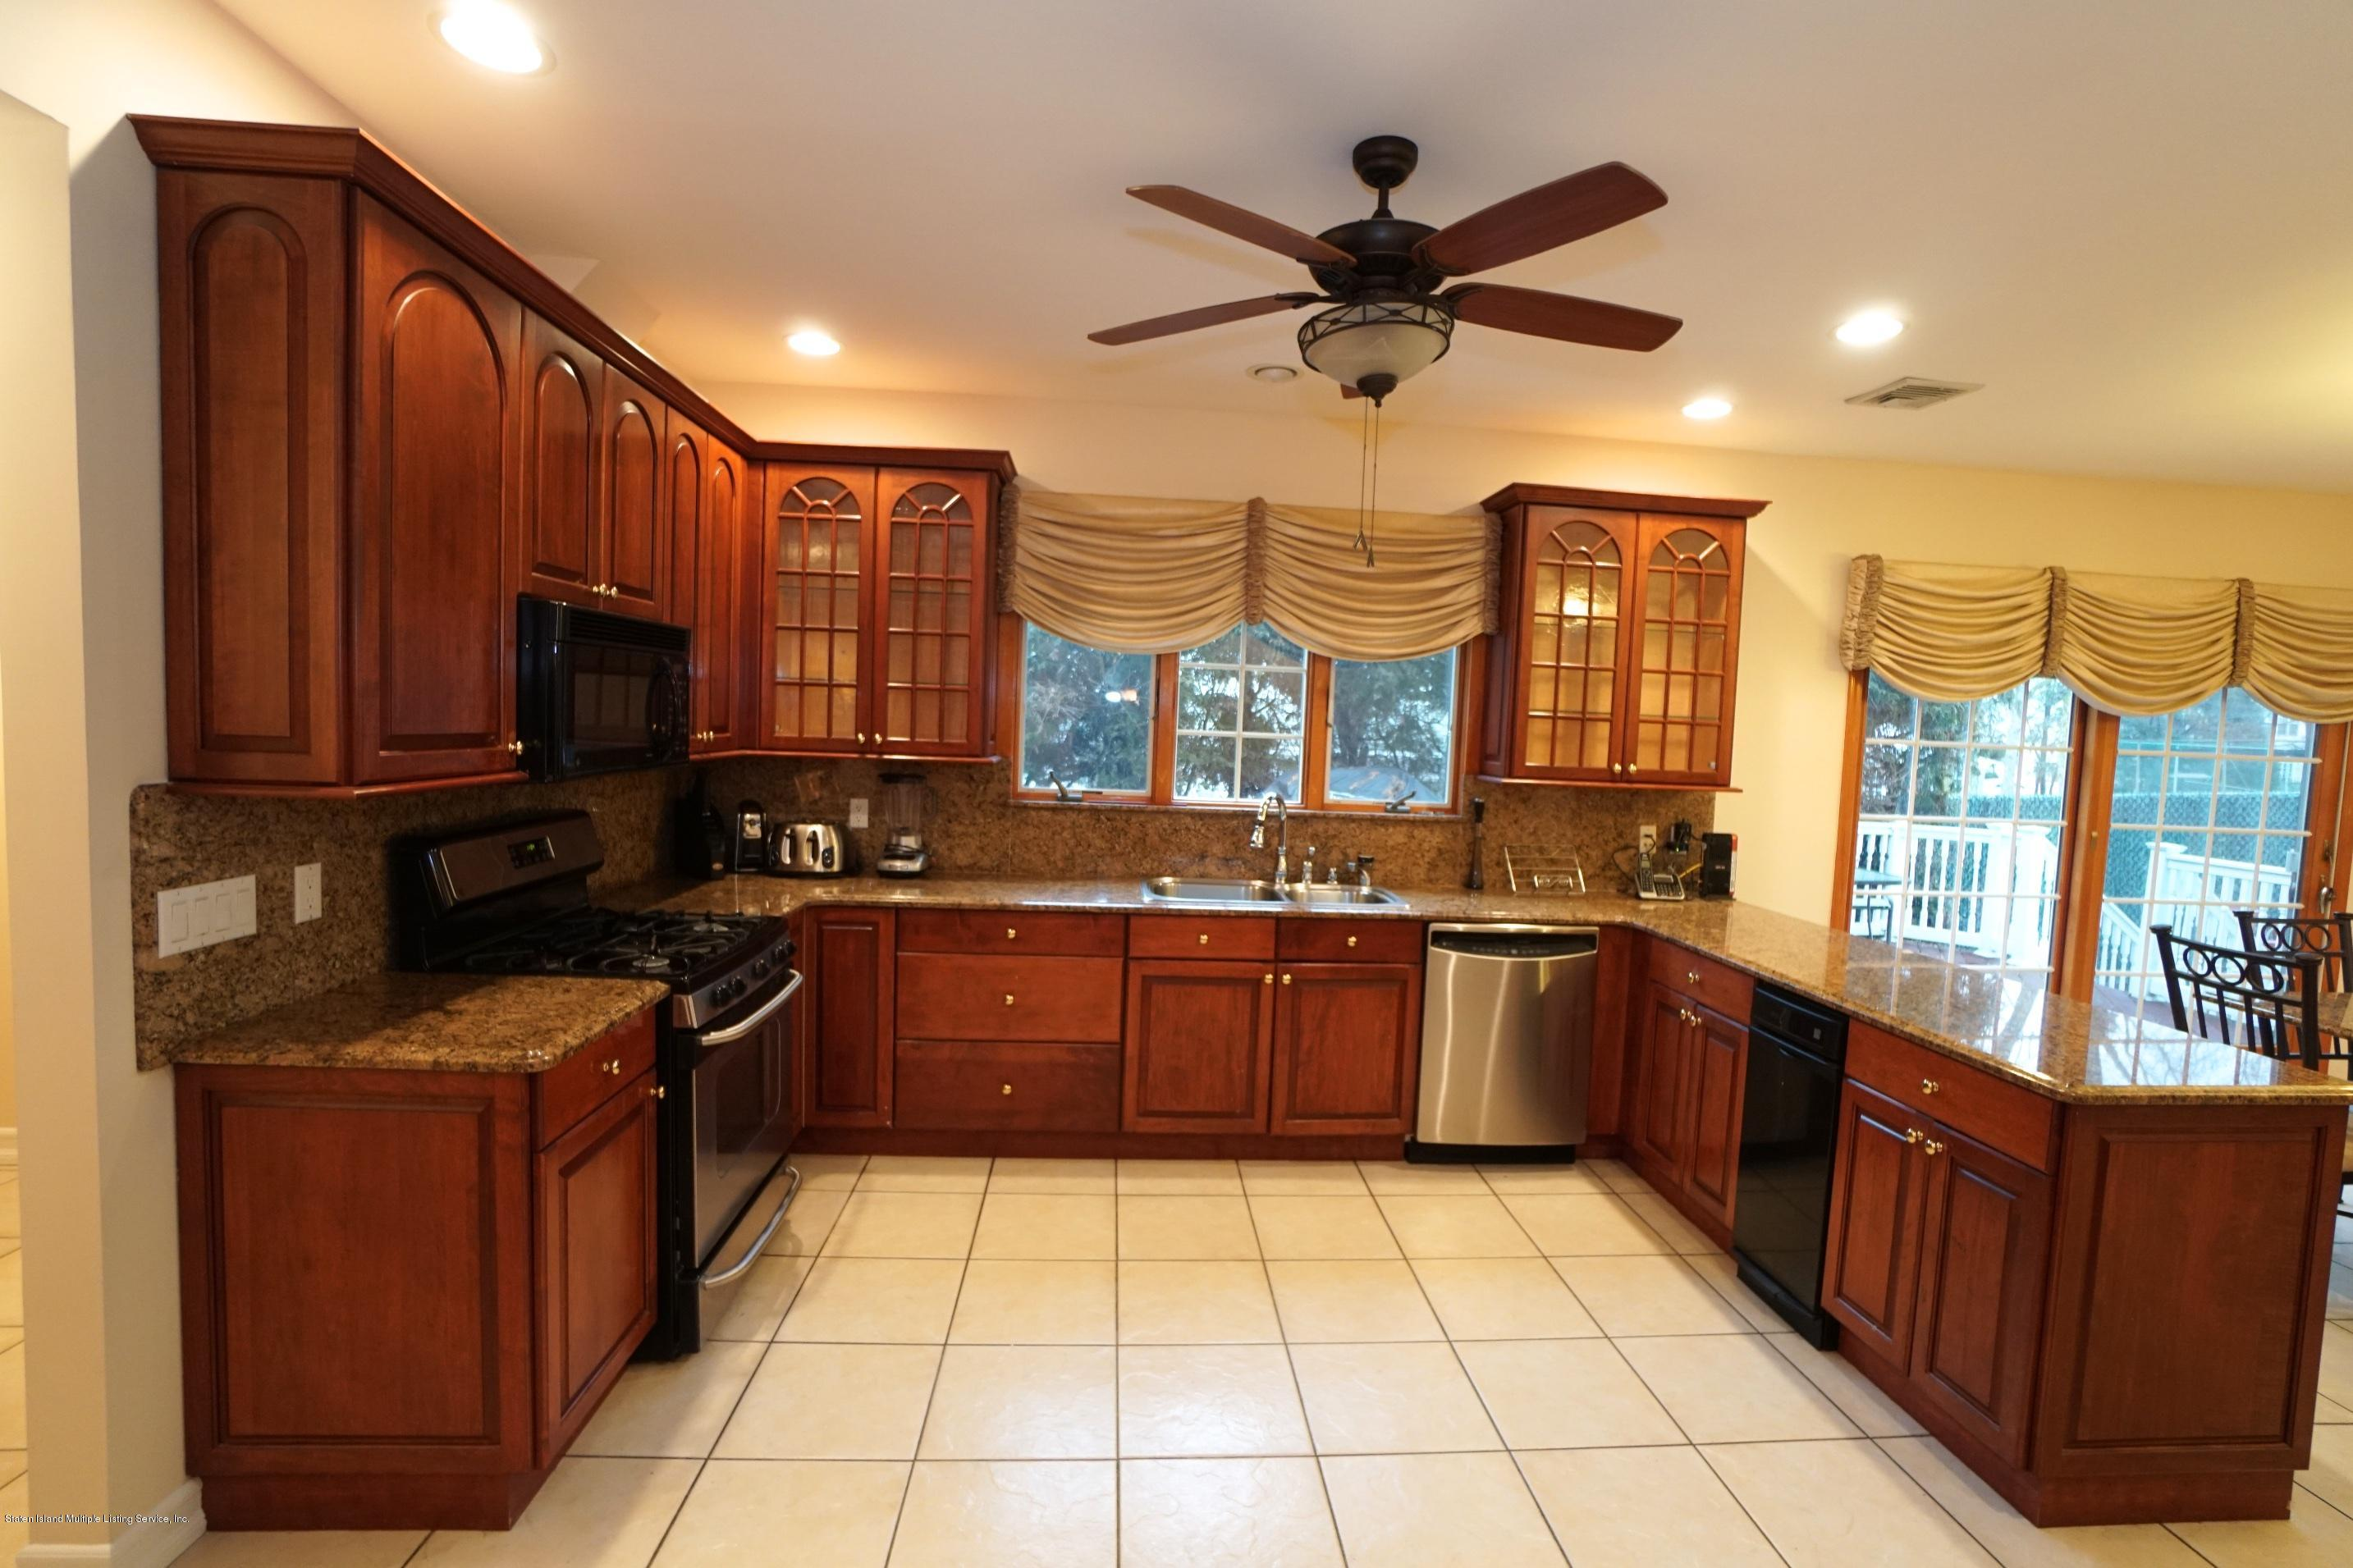 Single Family - Detached 120 Romer Road  Staten Island, NY 10304, MLS-1125309-9